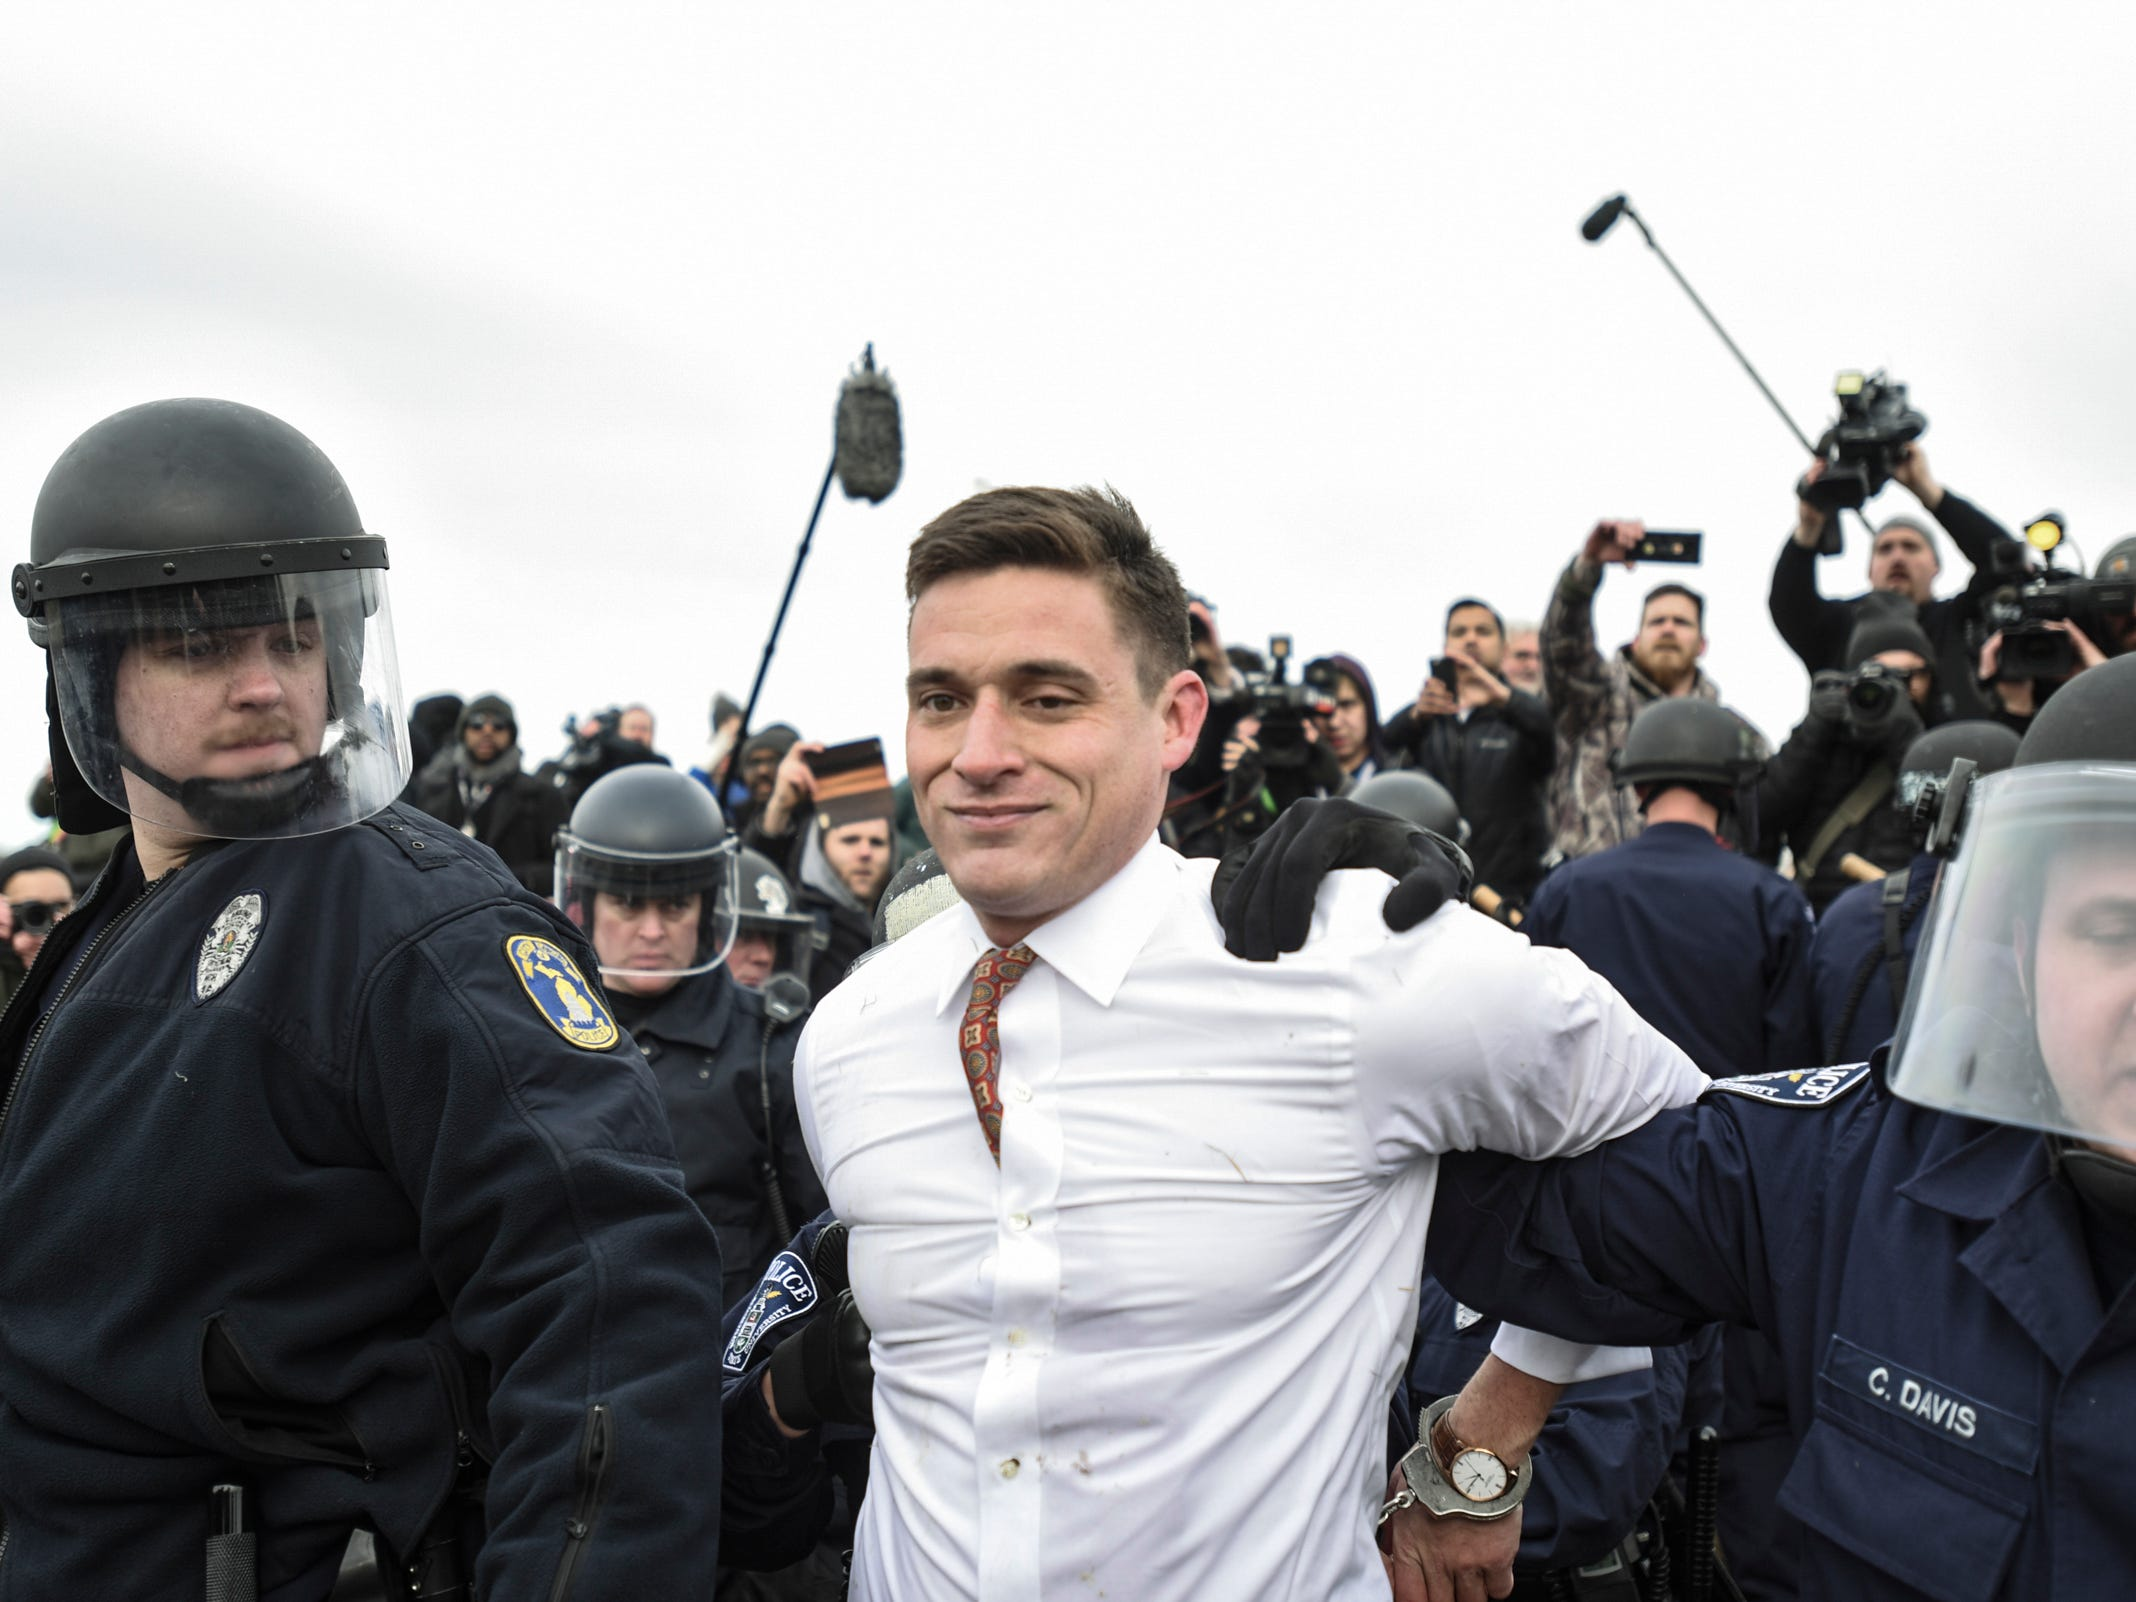 Richard Spencer ally Gregory Conte is taken into custody Monday, March 5, 2018, outside of the MSU Pavilion, where hundreds of protesters gathered to block Richard Spencer supporters from gaining entrance.